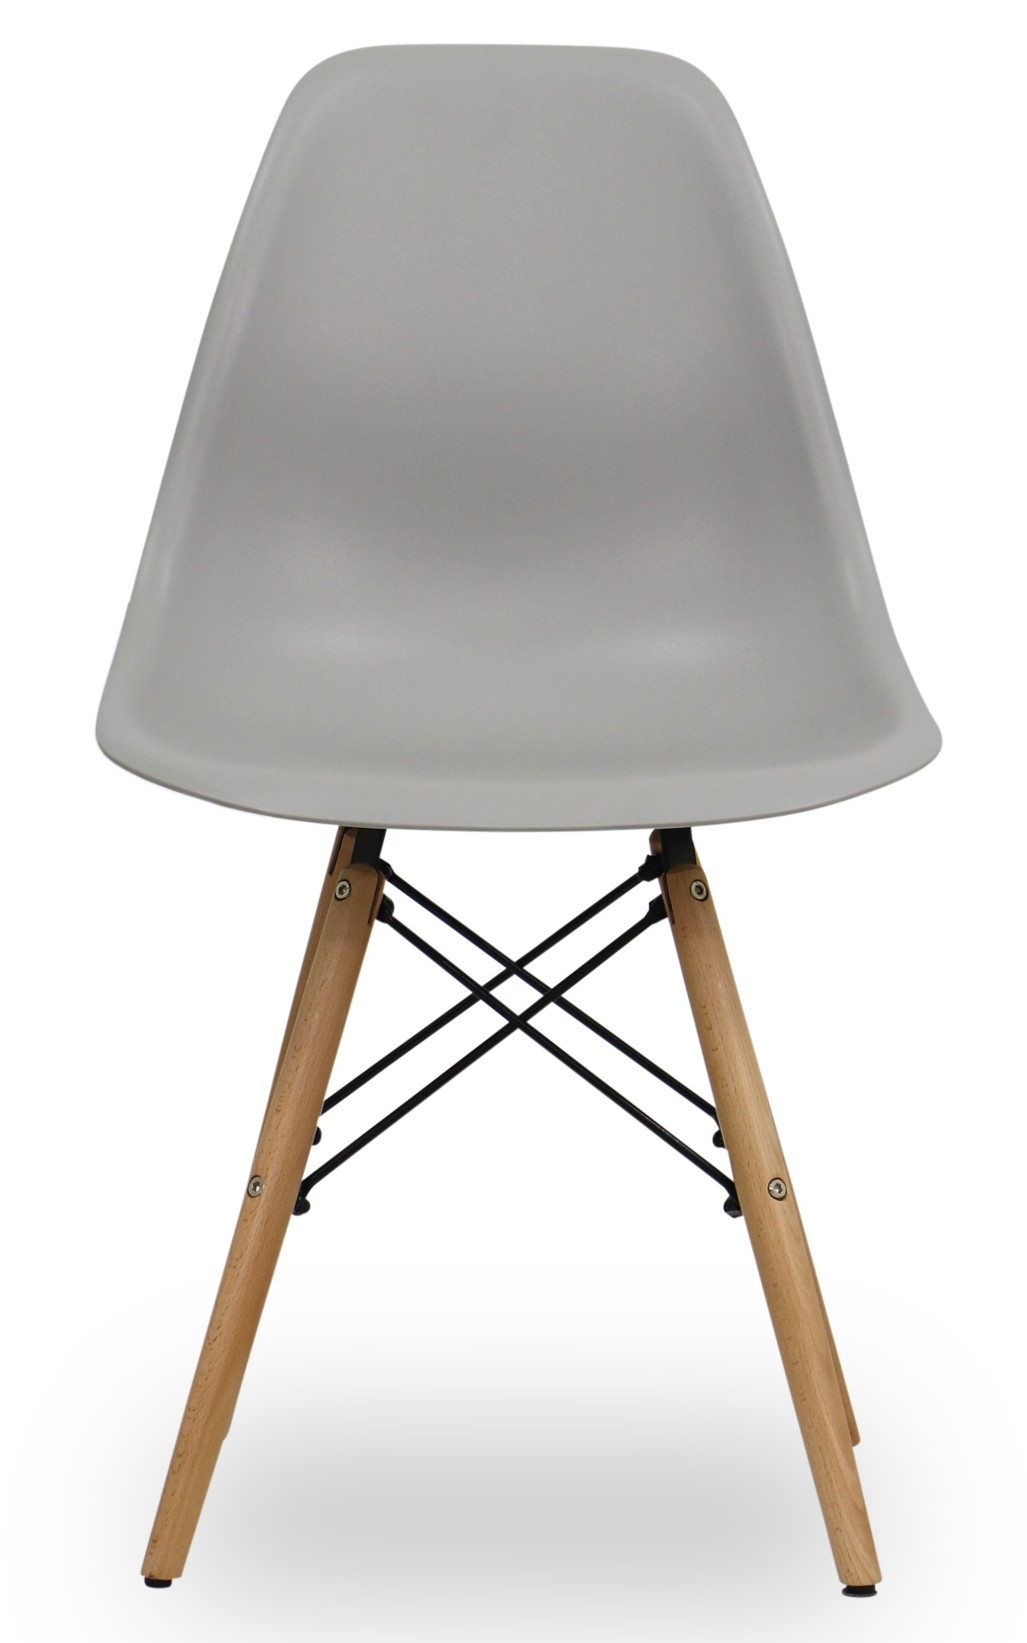 Eames light grey replica designer chair dining room for Imitation designer chairs